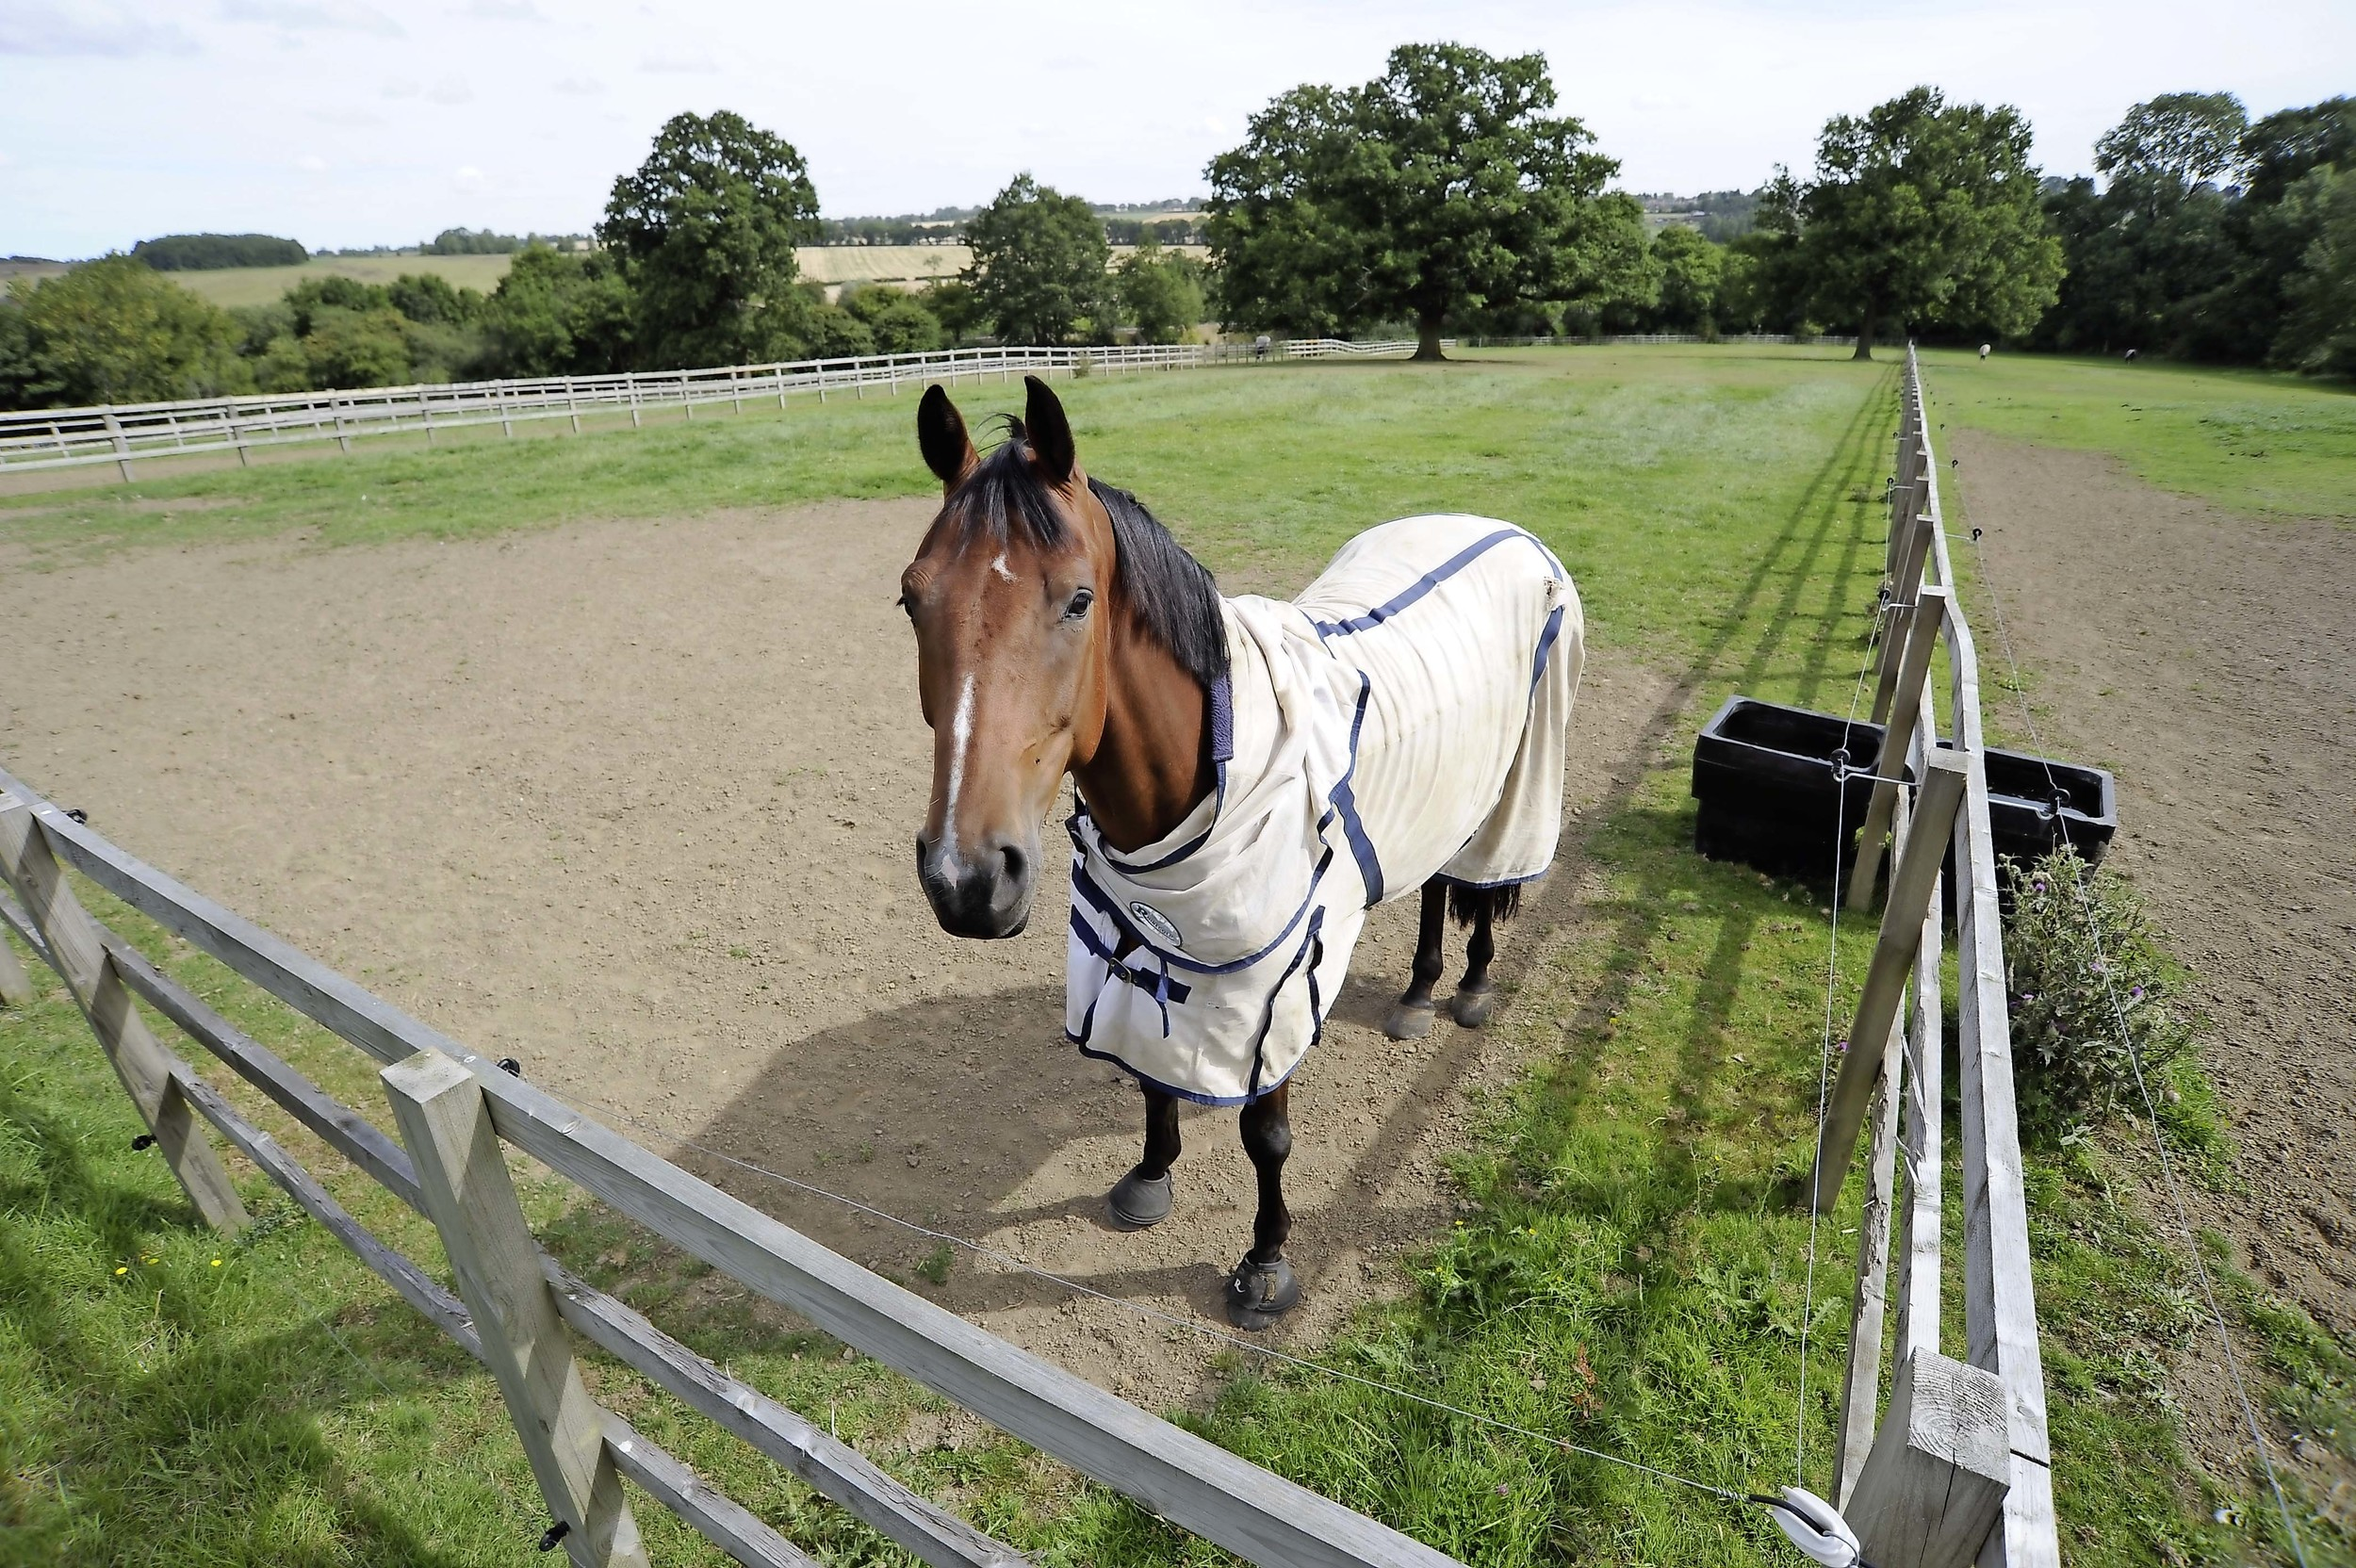 If your horse escapes from his field you'll need to claim ownership within four working days